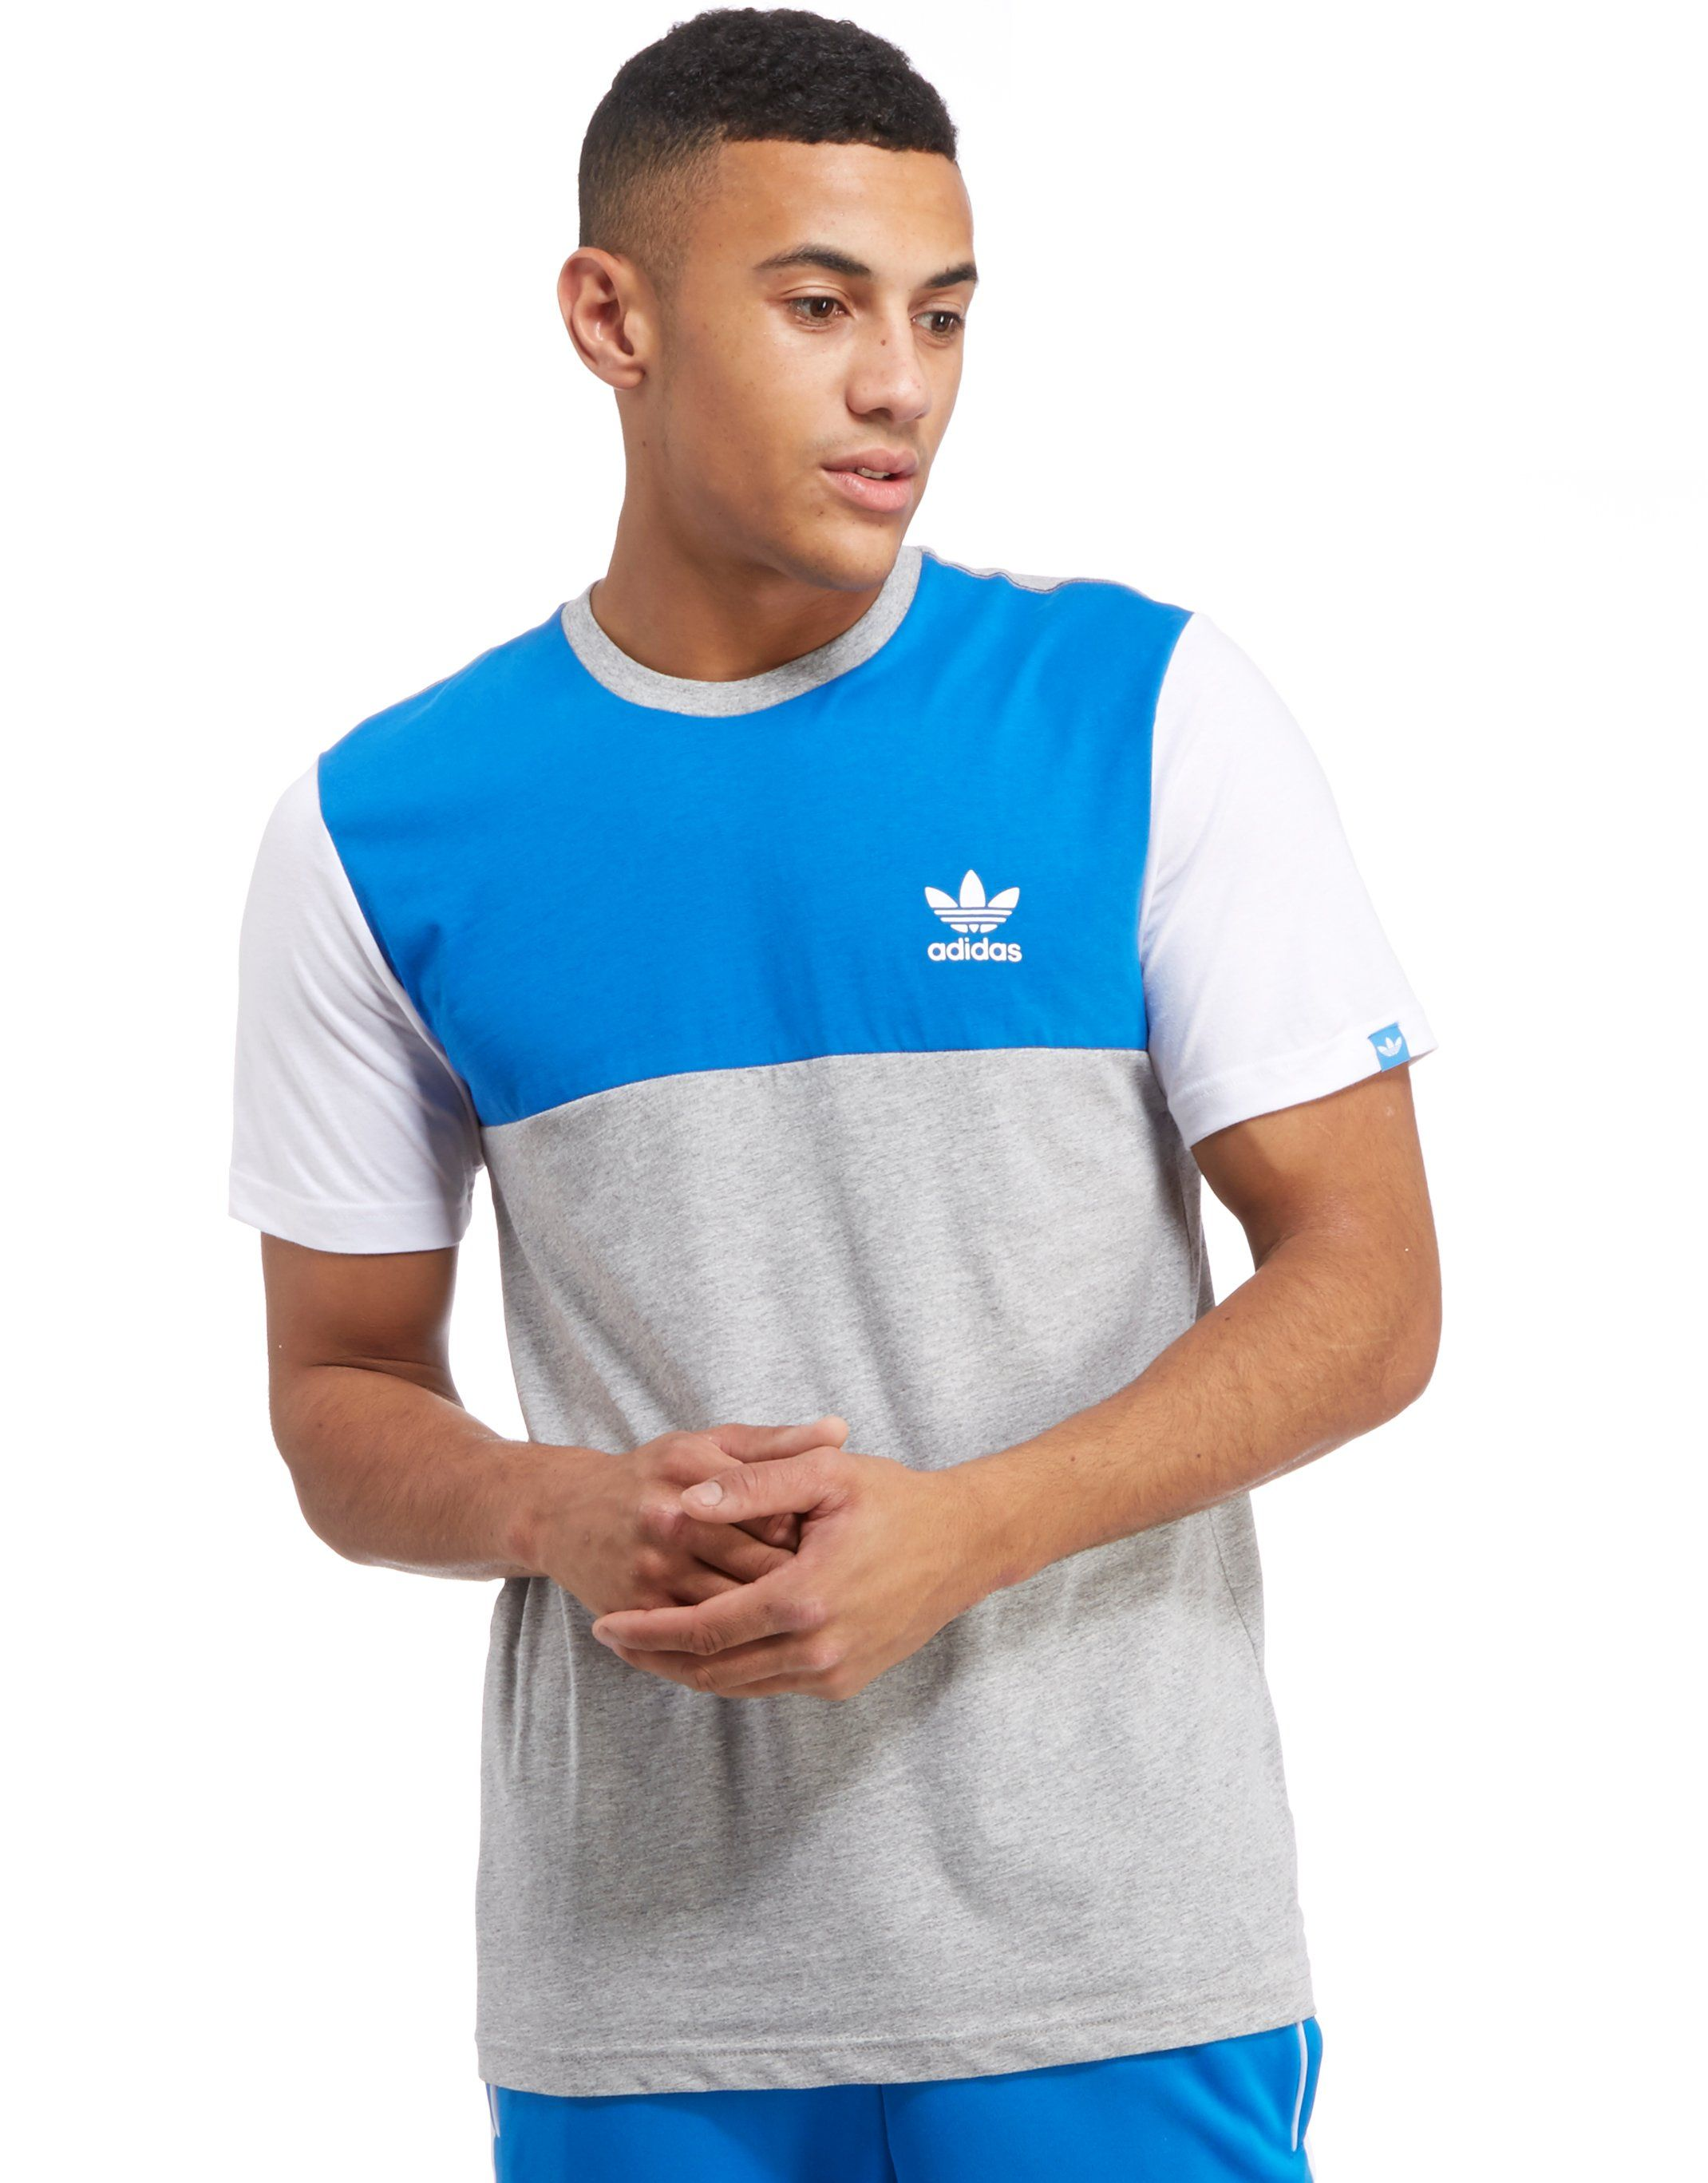 dec633678 free shipping adidas Originals Colour Block T-Shirt | JD Sports ...